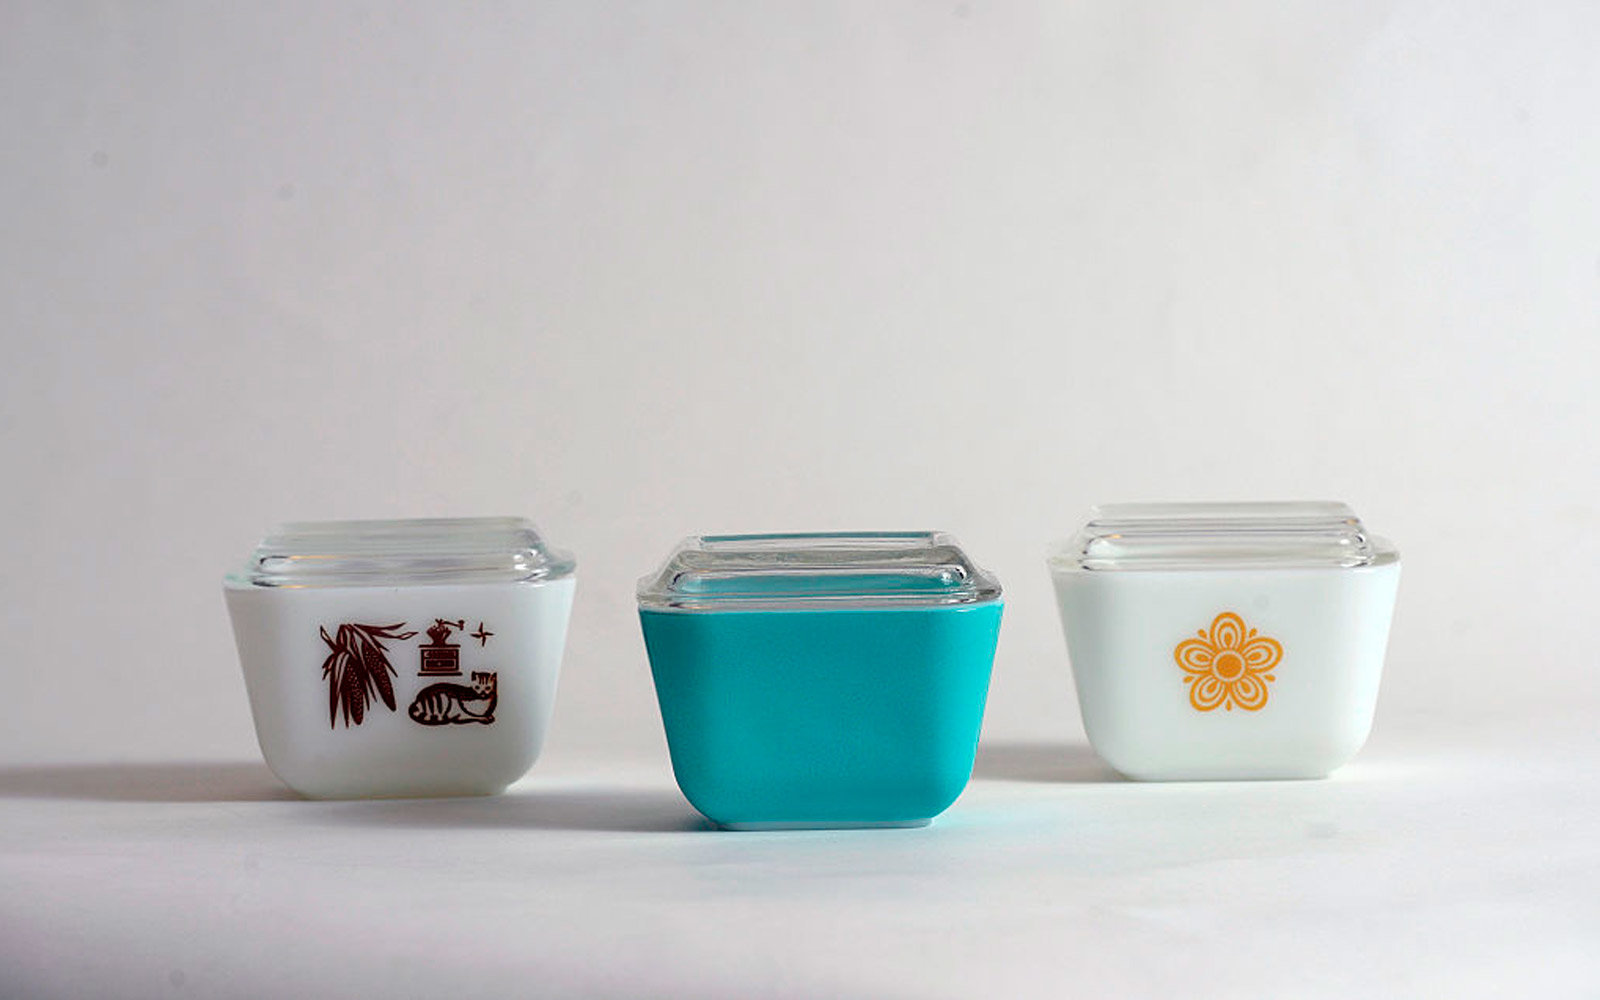 One of the most popular type of dishes from Pyrex is the refrigerator dish.